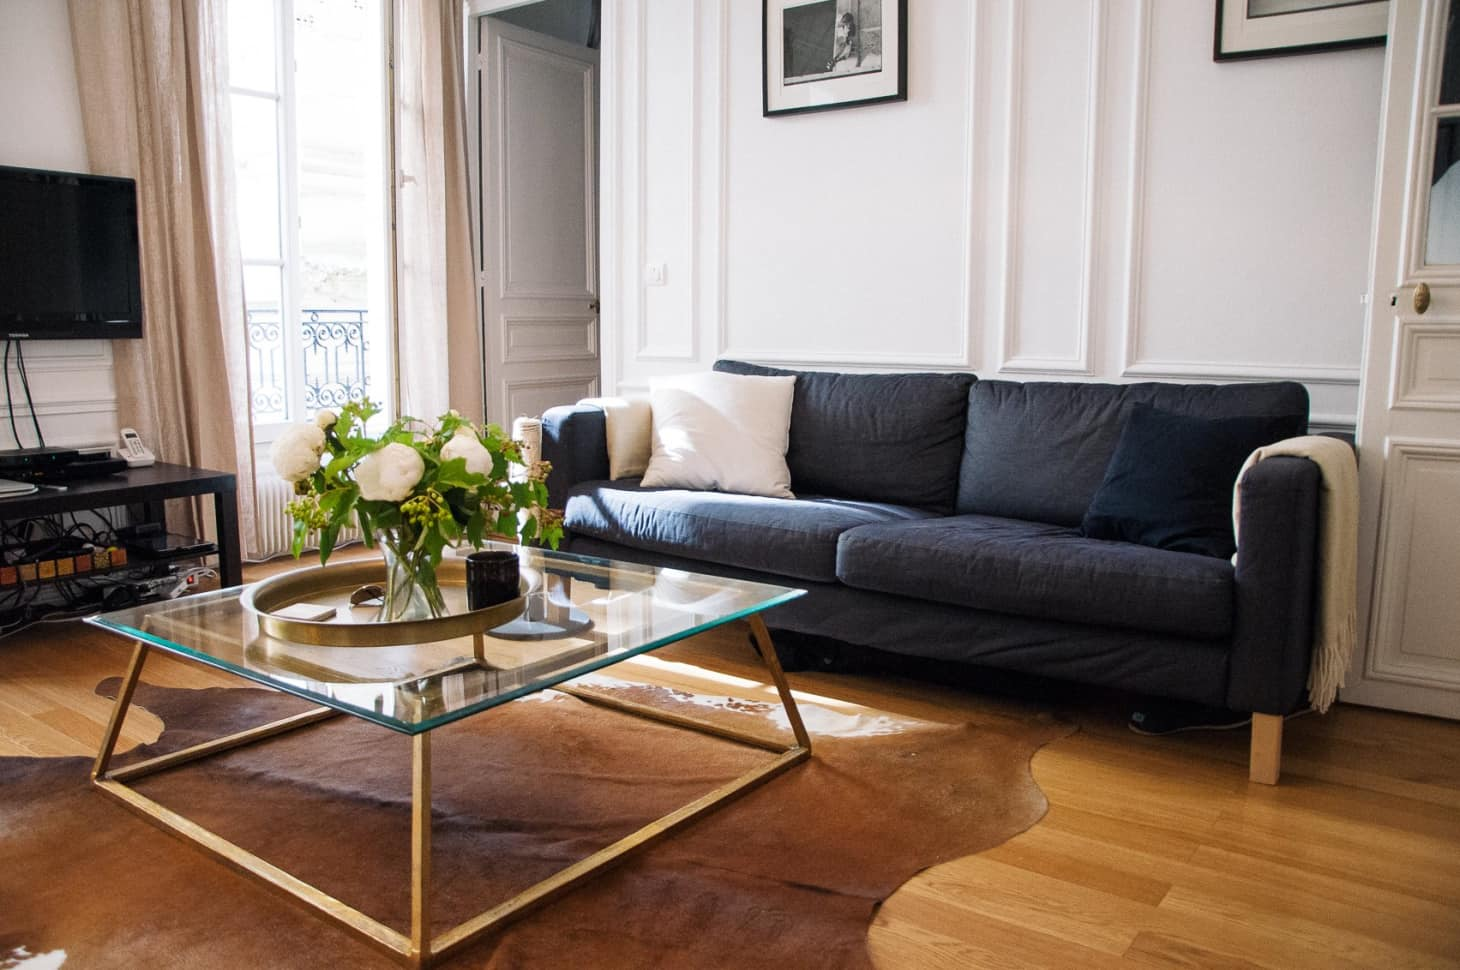 10 Modern Affordable Furniture Stores That Aren\'t IKEA | Apartment ...